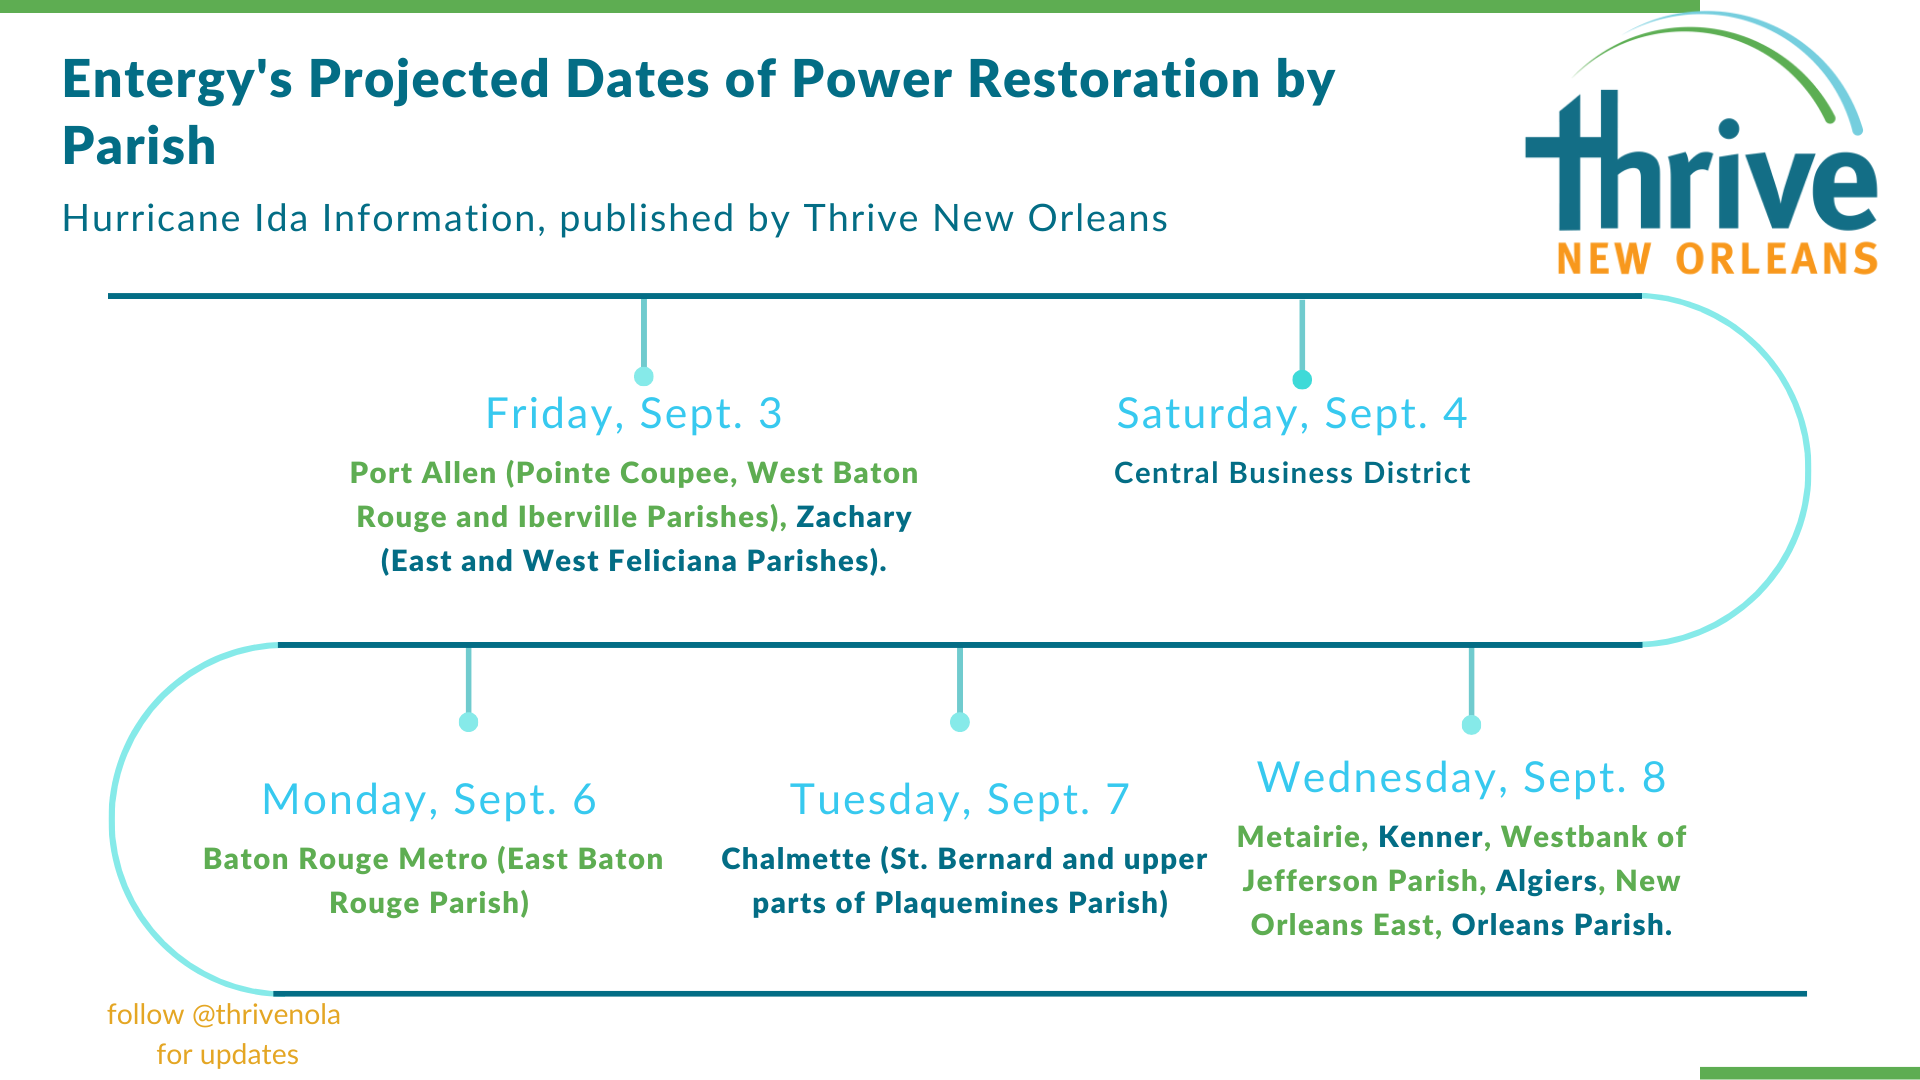 Entergy Projected Dates of Power Restoration by Parish